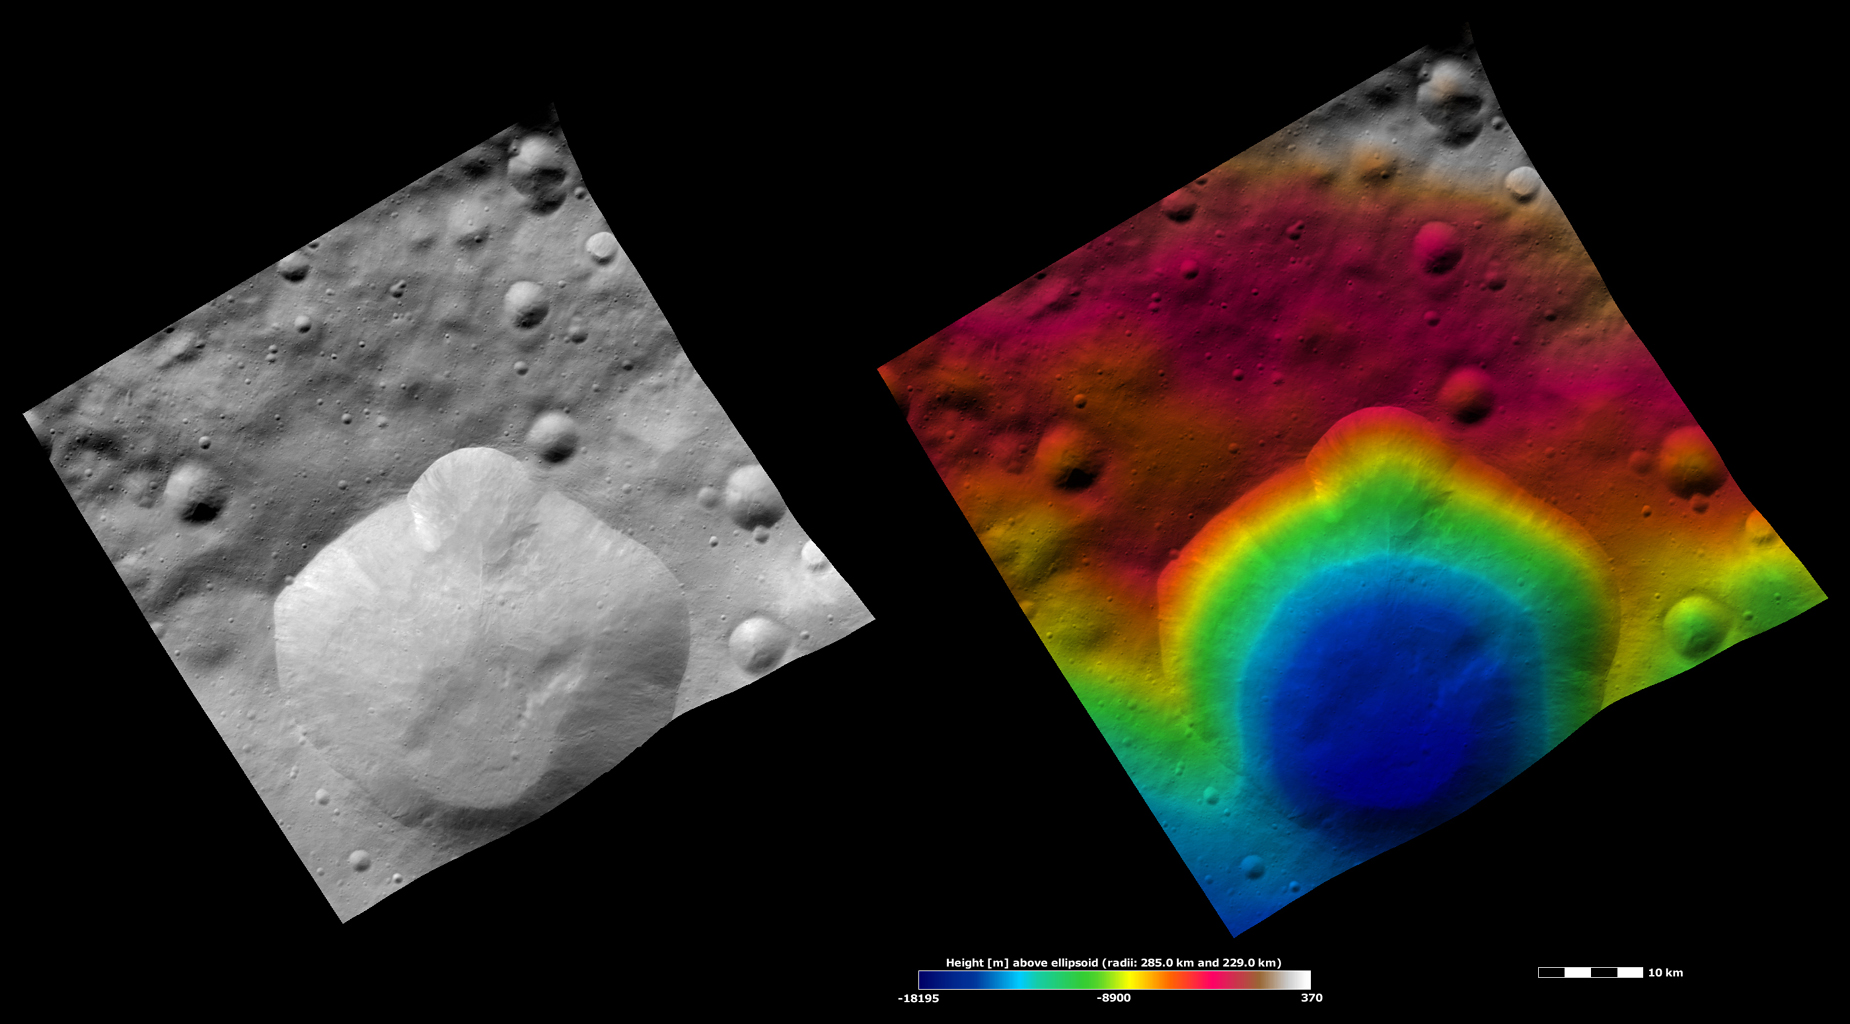 Lepida Crater, Apparent Brightness and Topography Images